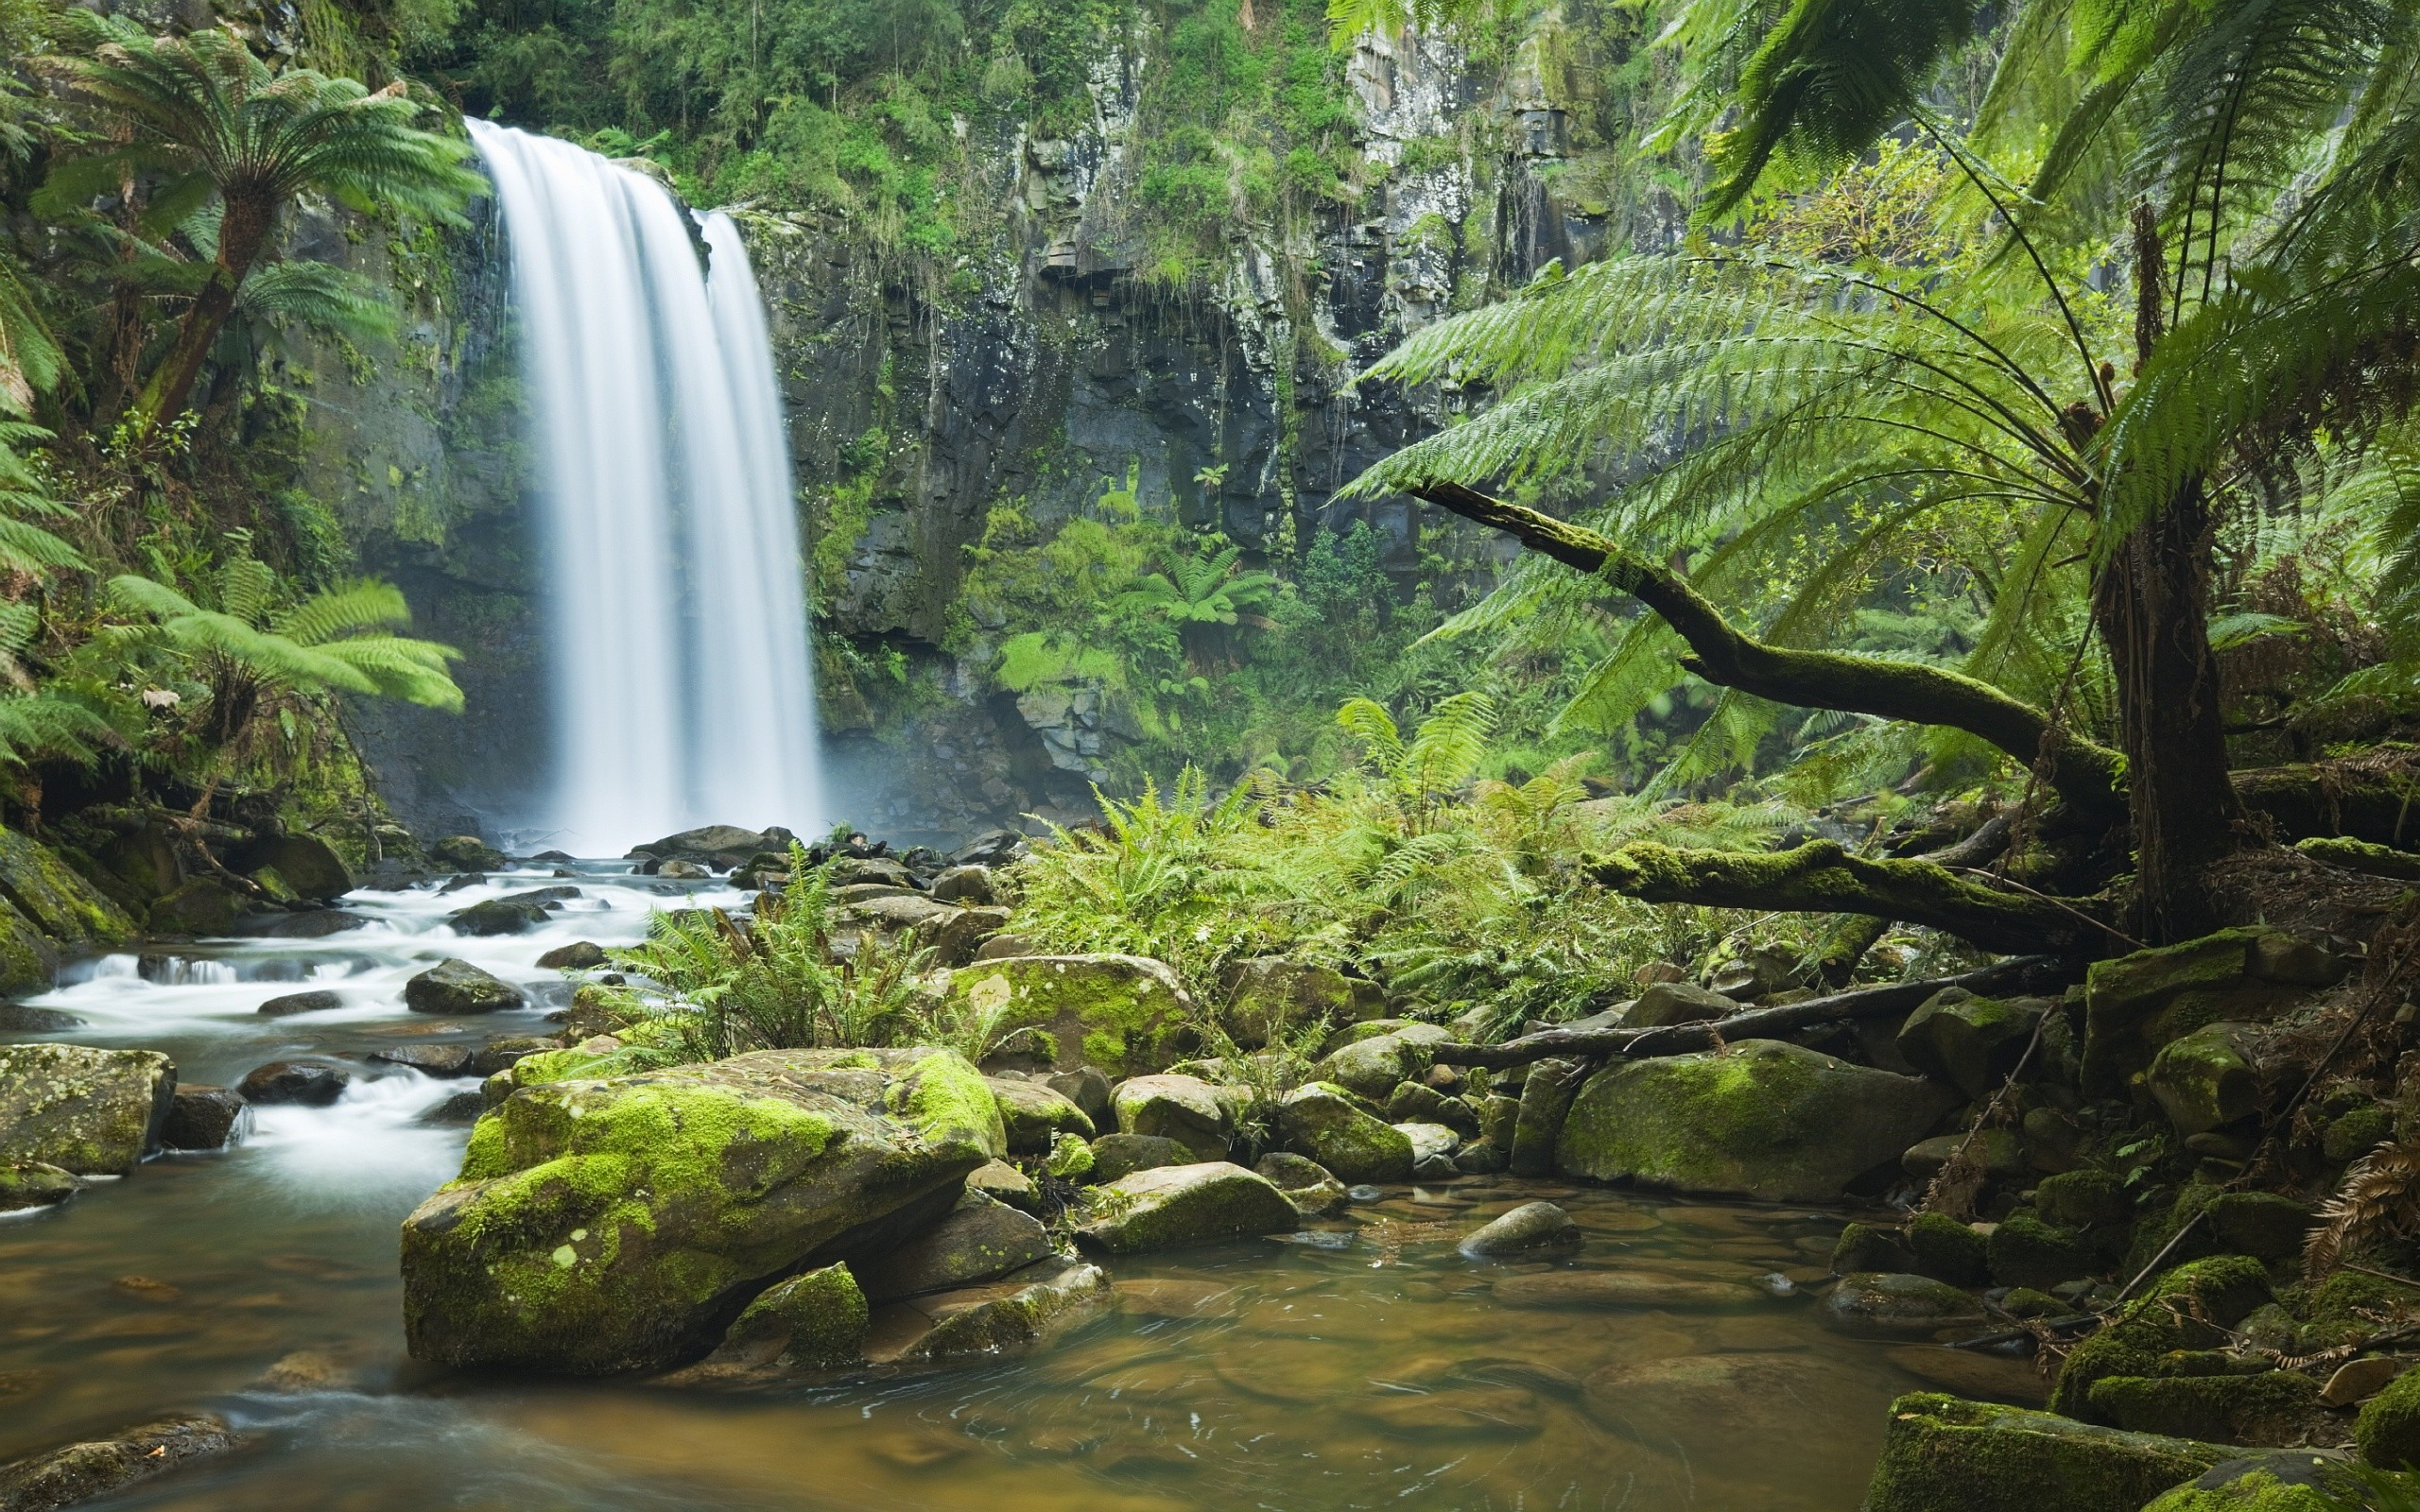 Amazon rainforest wallpaper wallpapertag - Amazon wallpaper hd ...